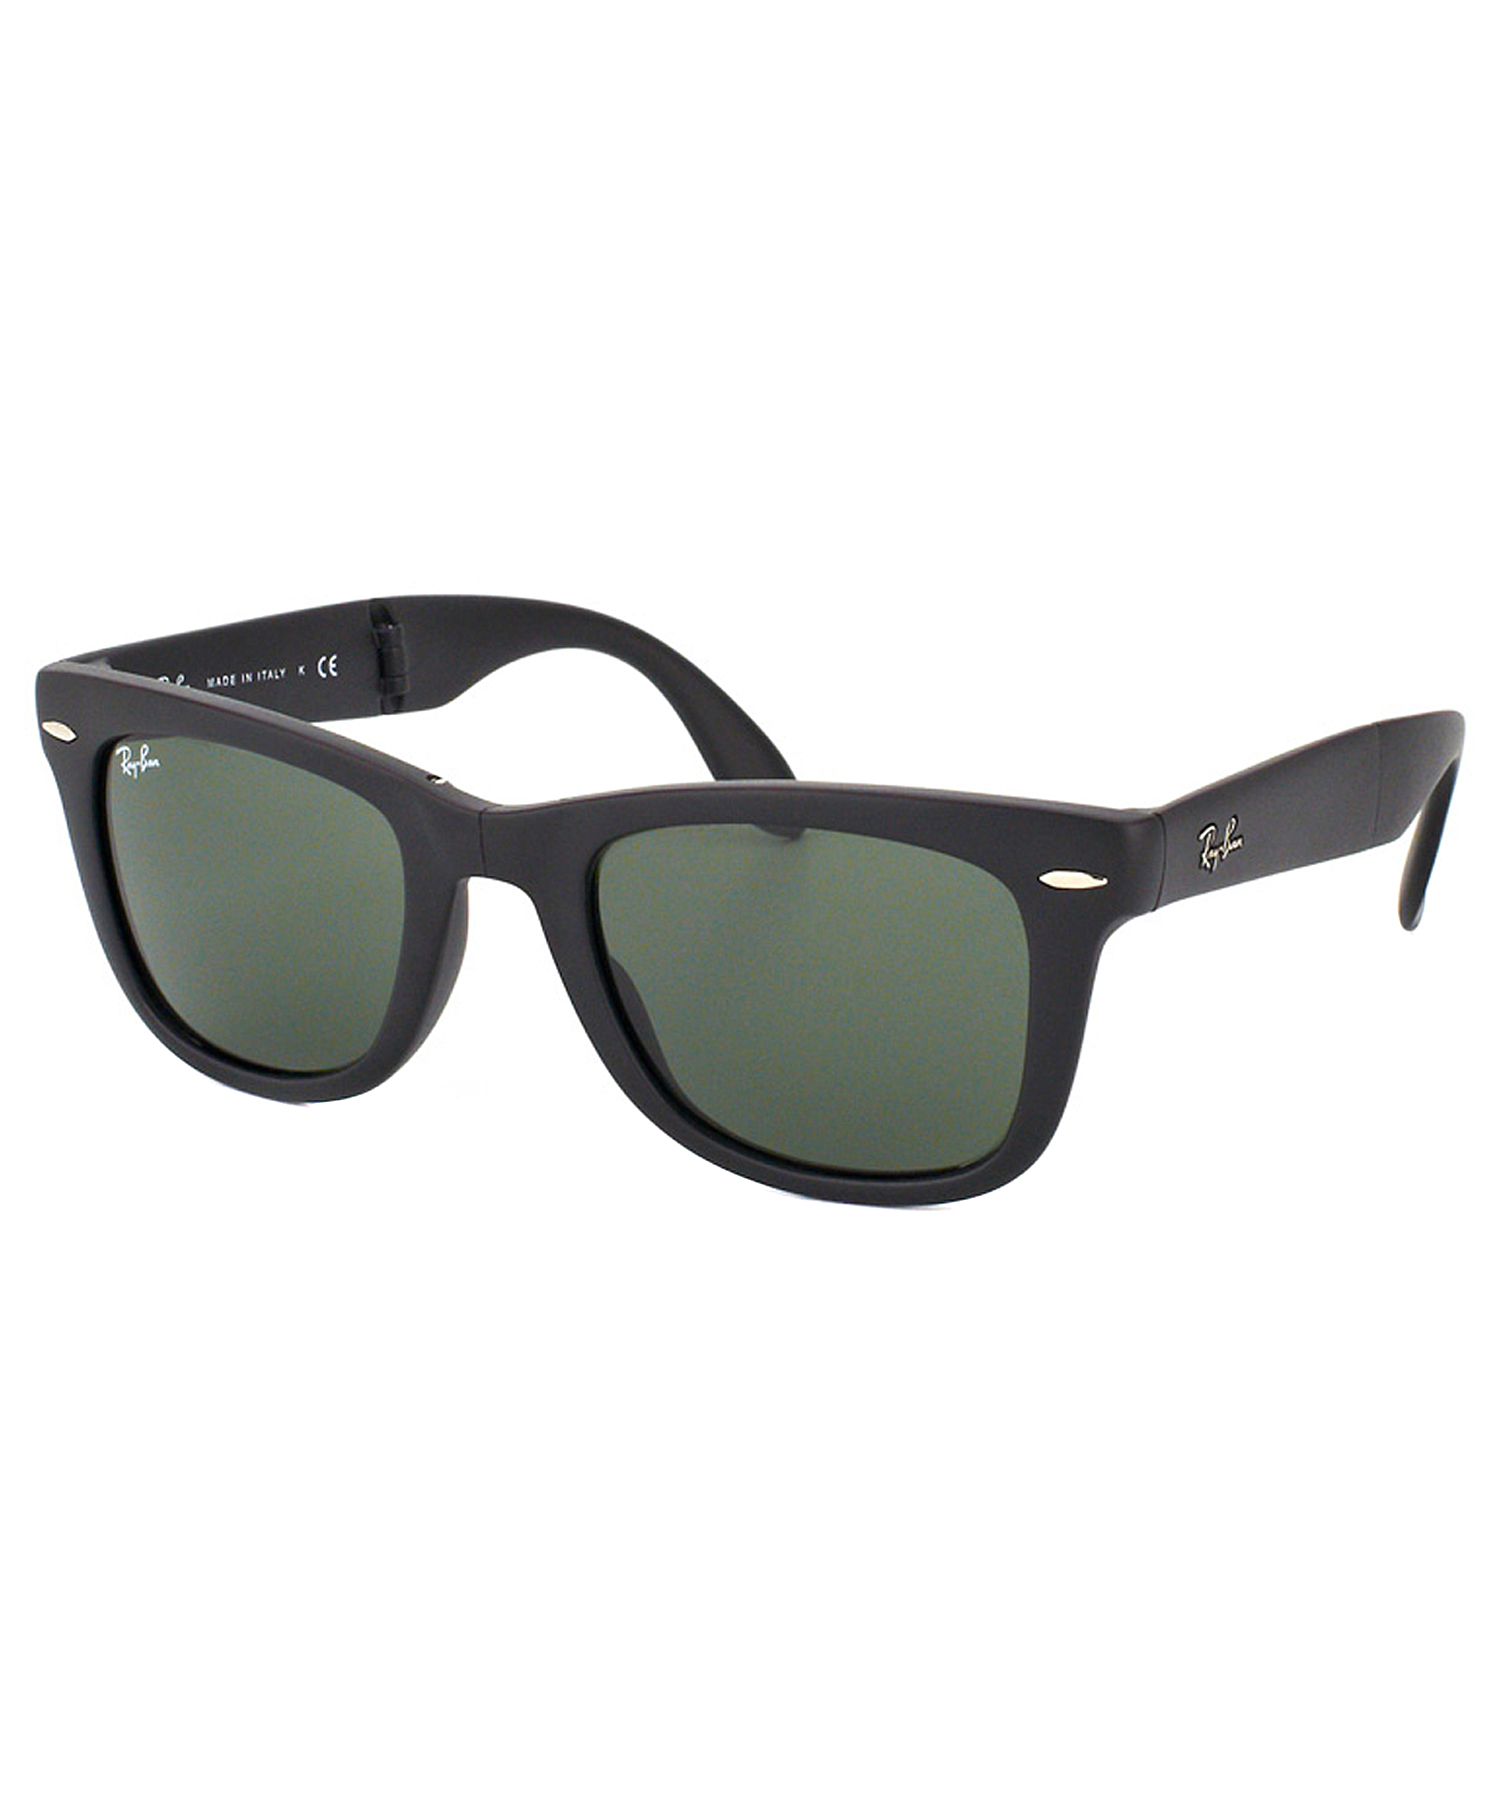 Ray Ban RB New Wayfarer Brown / Brown Lens Sunglasses - 58mm. Regular price $ Ray Ban New Wayfarer Tortoise / Yellow Lens Sunglasses. Regular price $ Ray Ban New Wayfarer Outsider Sunglasses RB Regular price $ Ray Ban LIMITED EDITION RB Blue / Pink Lens Sunglasses.